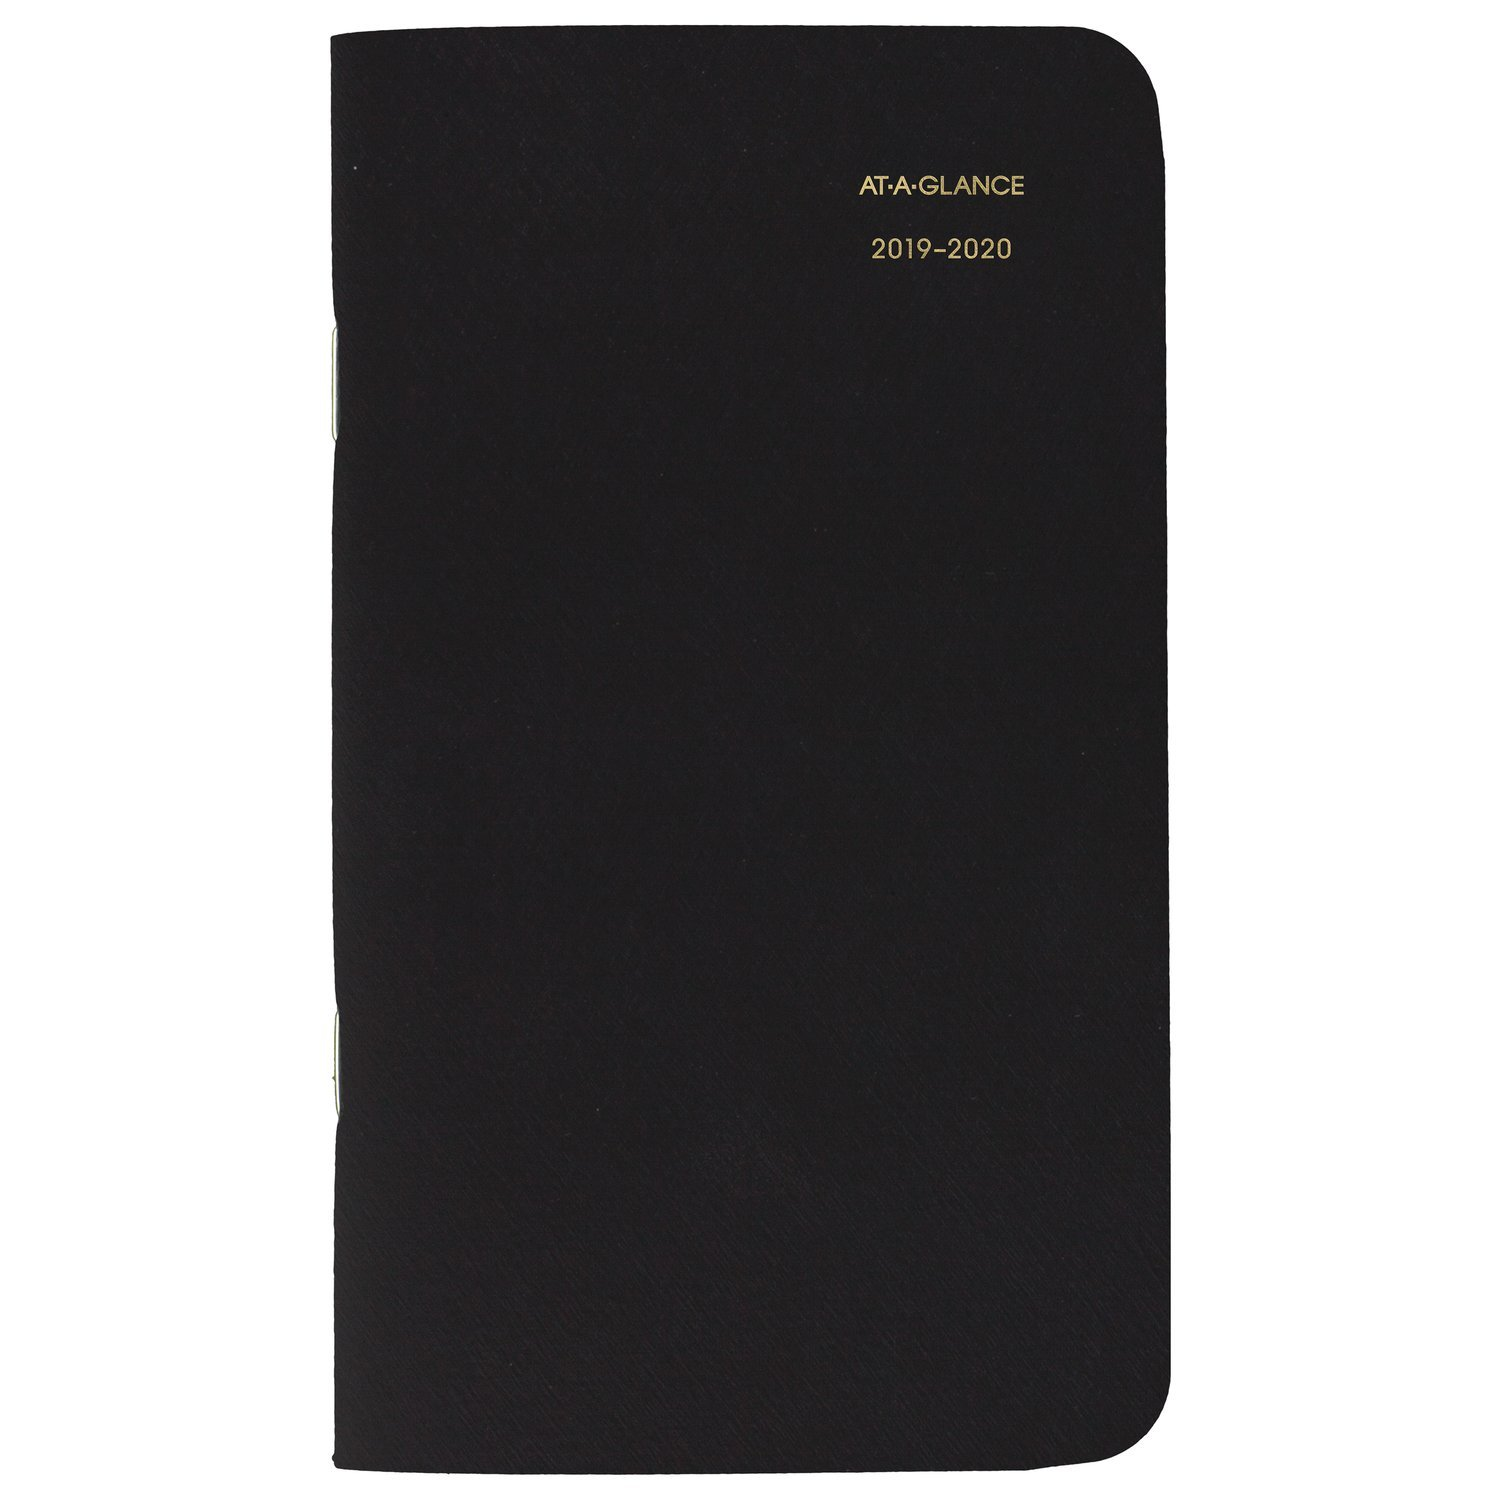 AT-A-GLANCE 2019-2020 Monthly Planner 2 Year, 3-1/2'' x 6'', Pocket, Black (7002405)